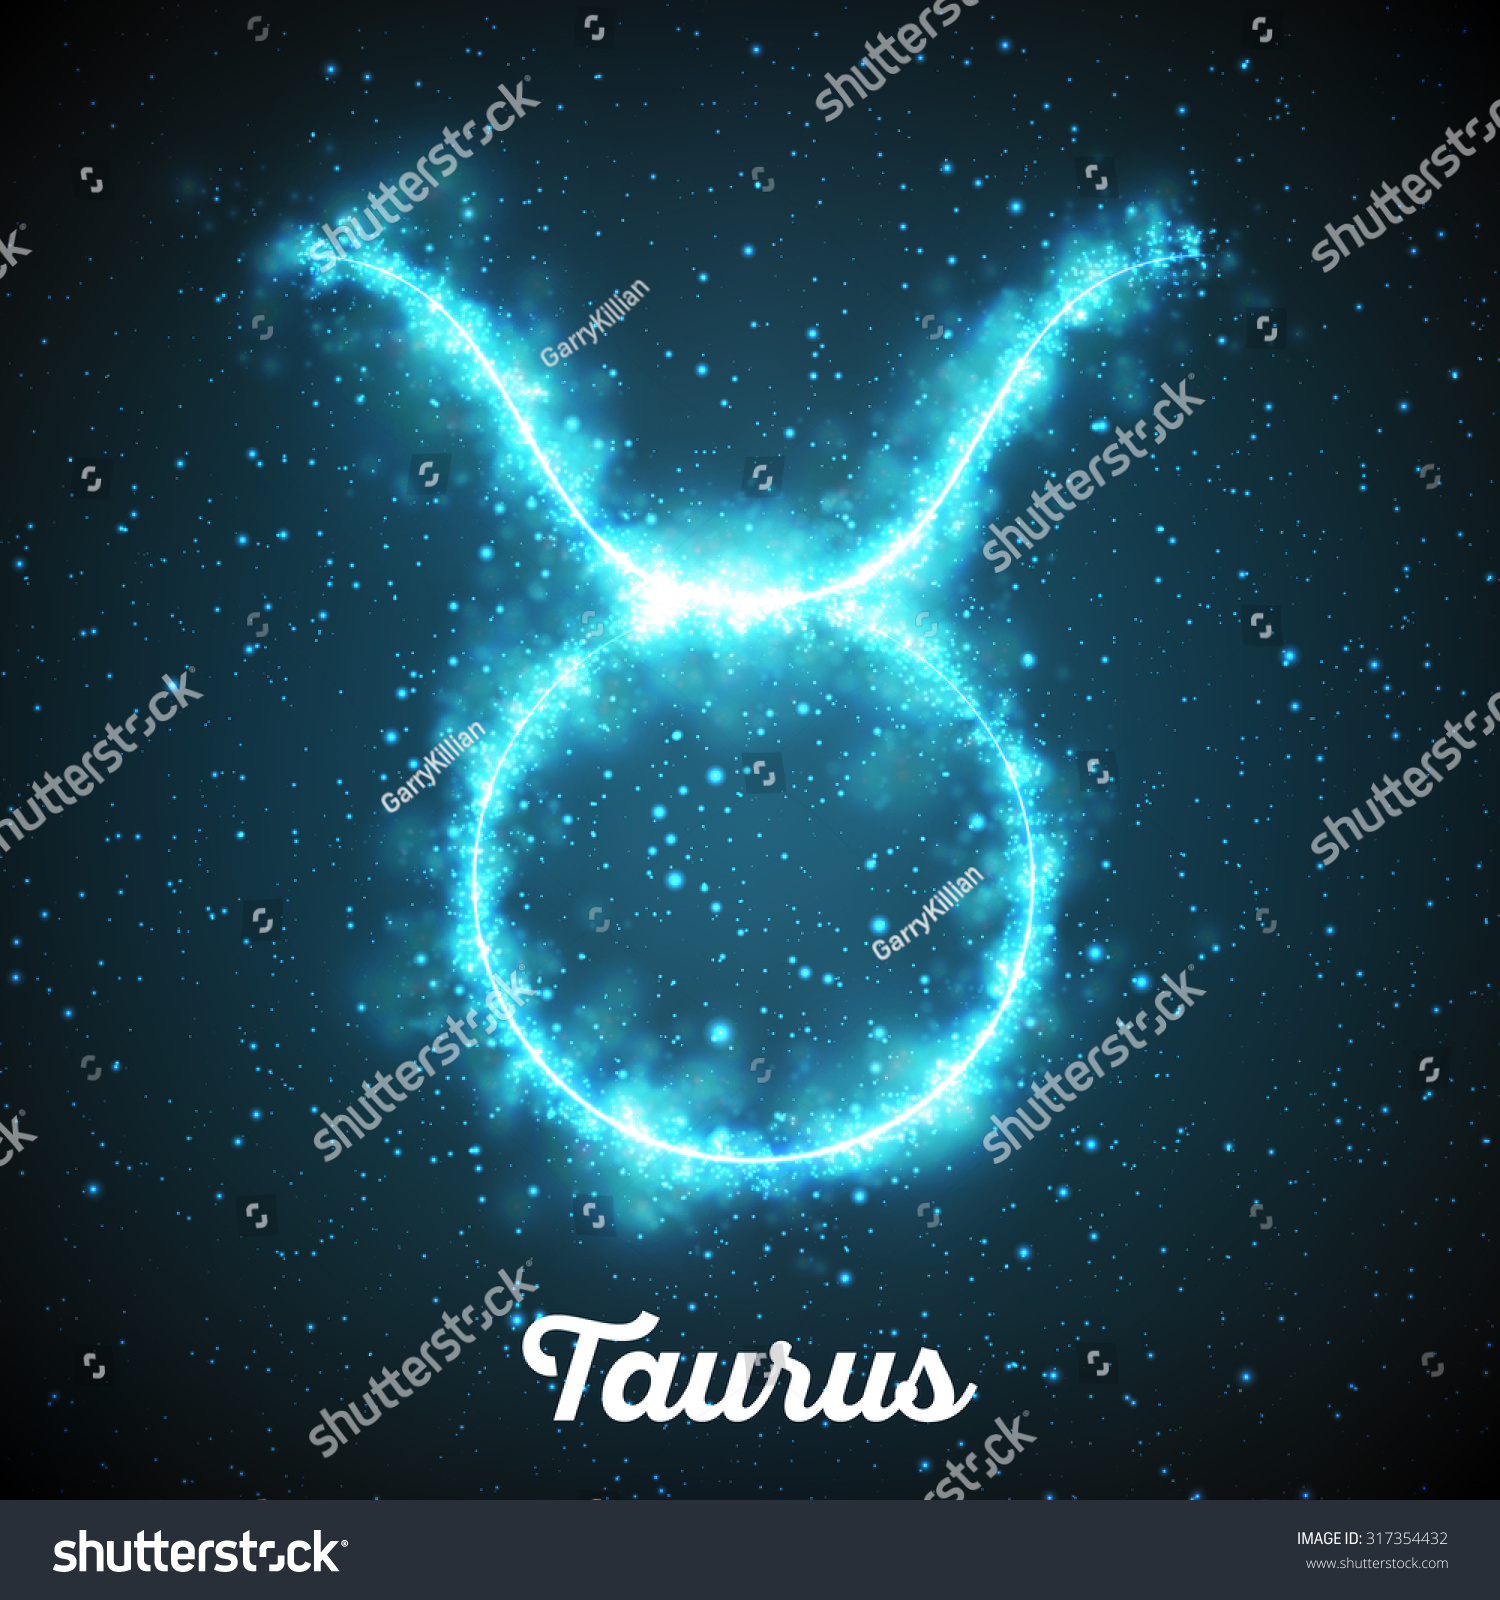 taurus nebula backgrounds - photo #30